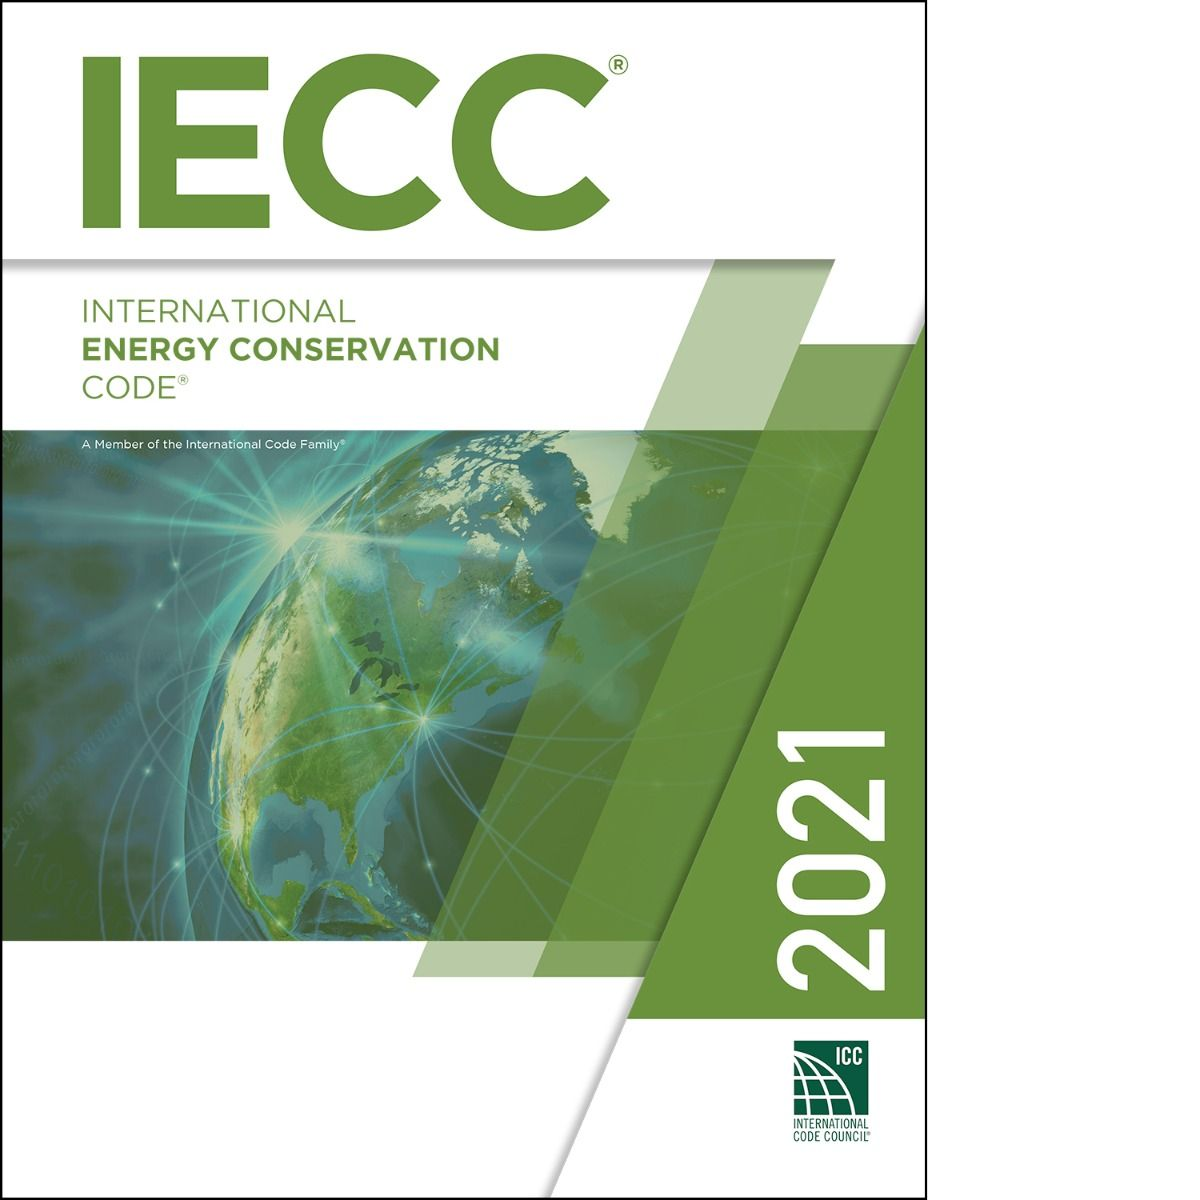 2021 International Energy Conservation Code®